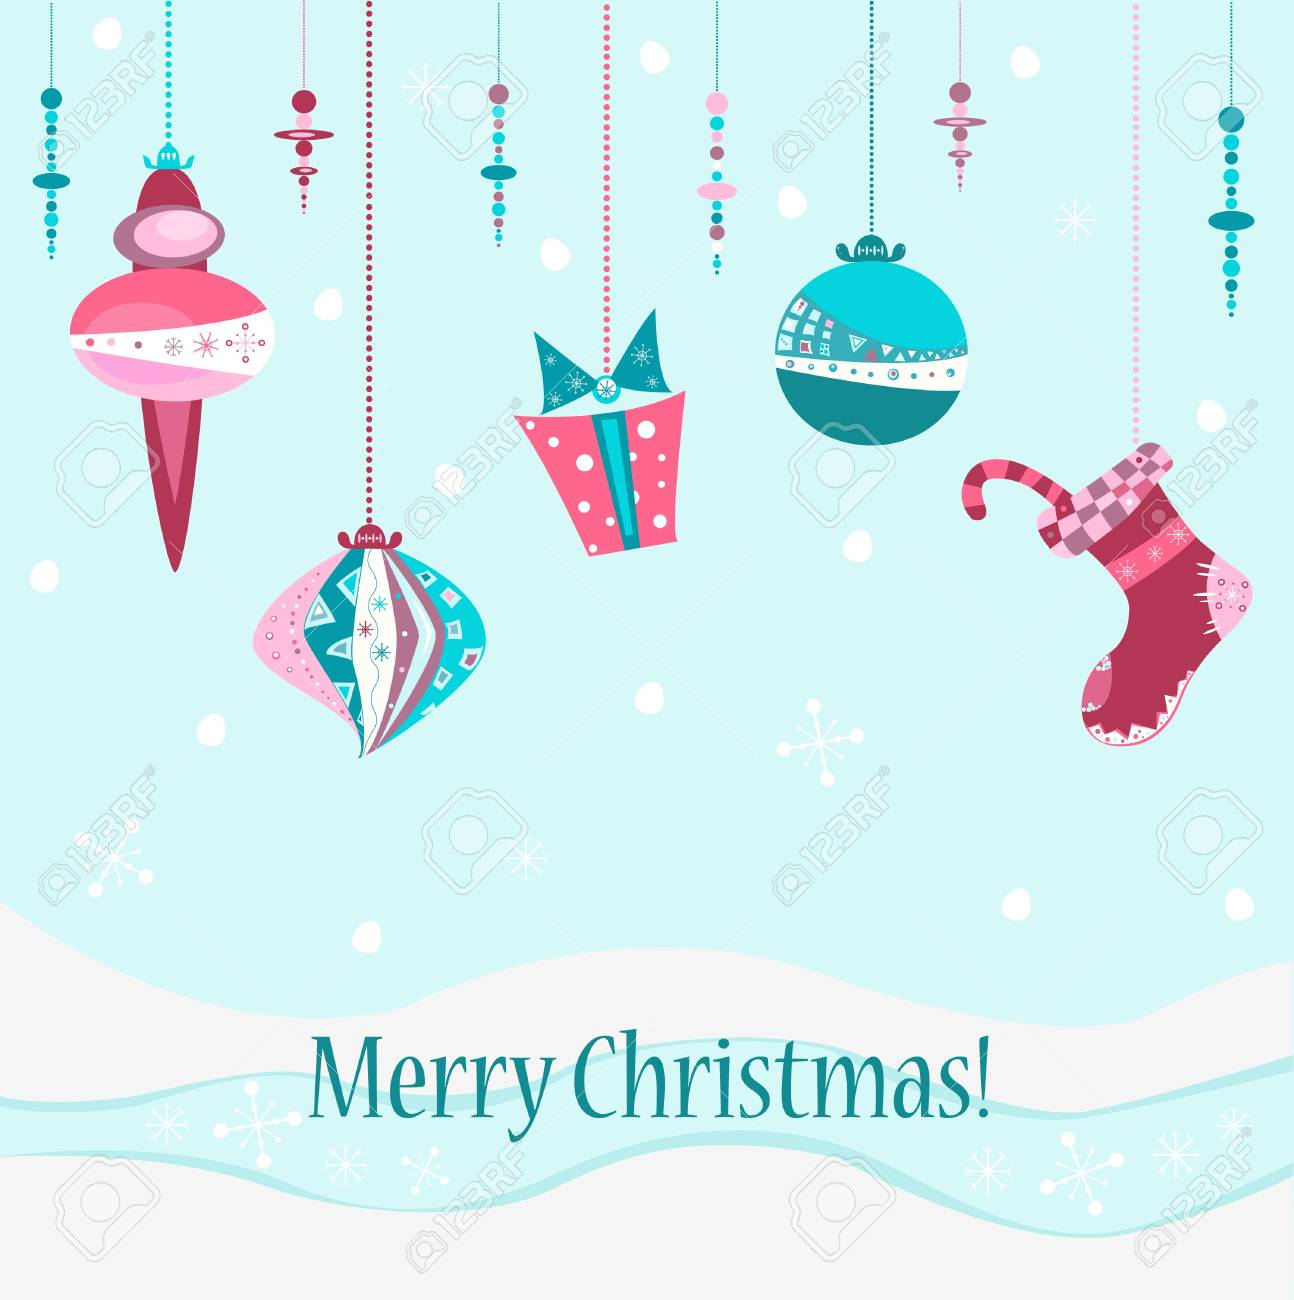 illustration Christmas greeting postcard with pretty ornate decorations Stock Vector - 16614759